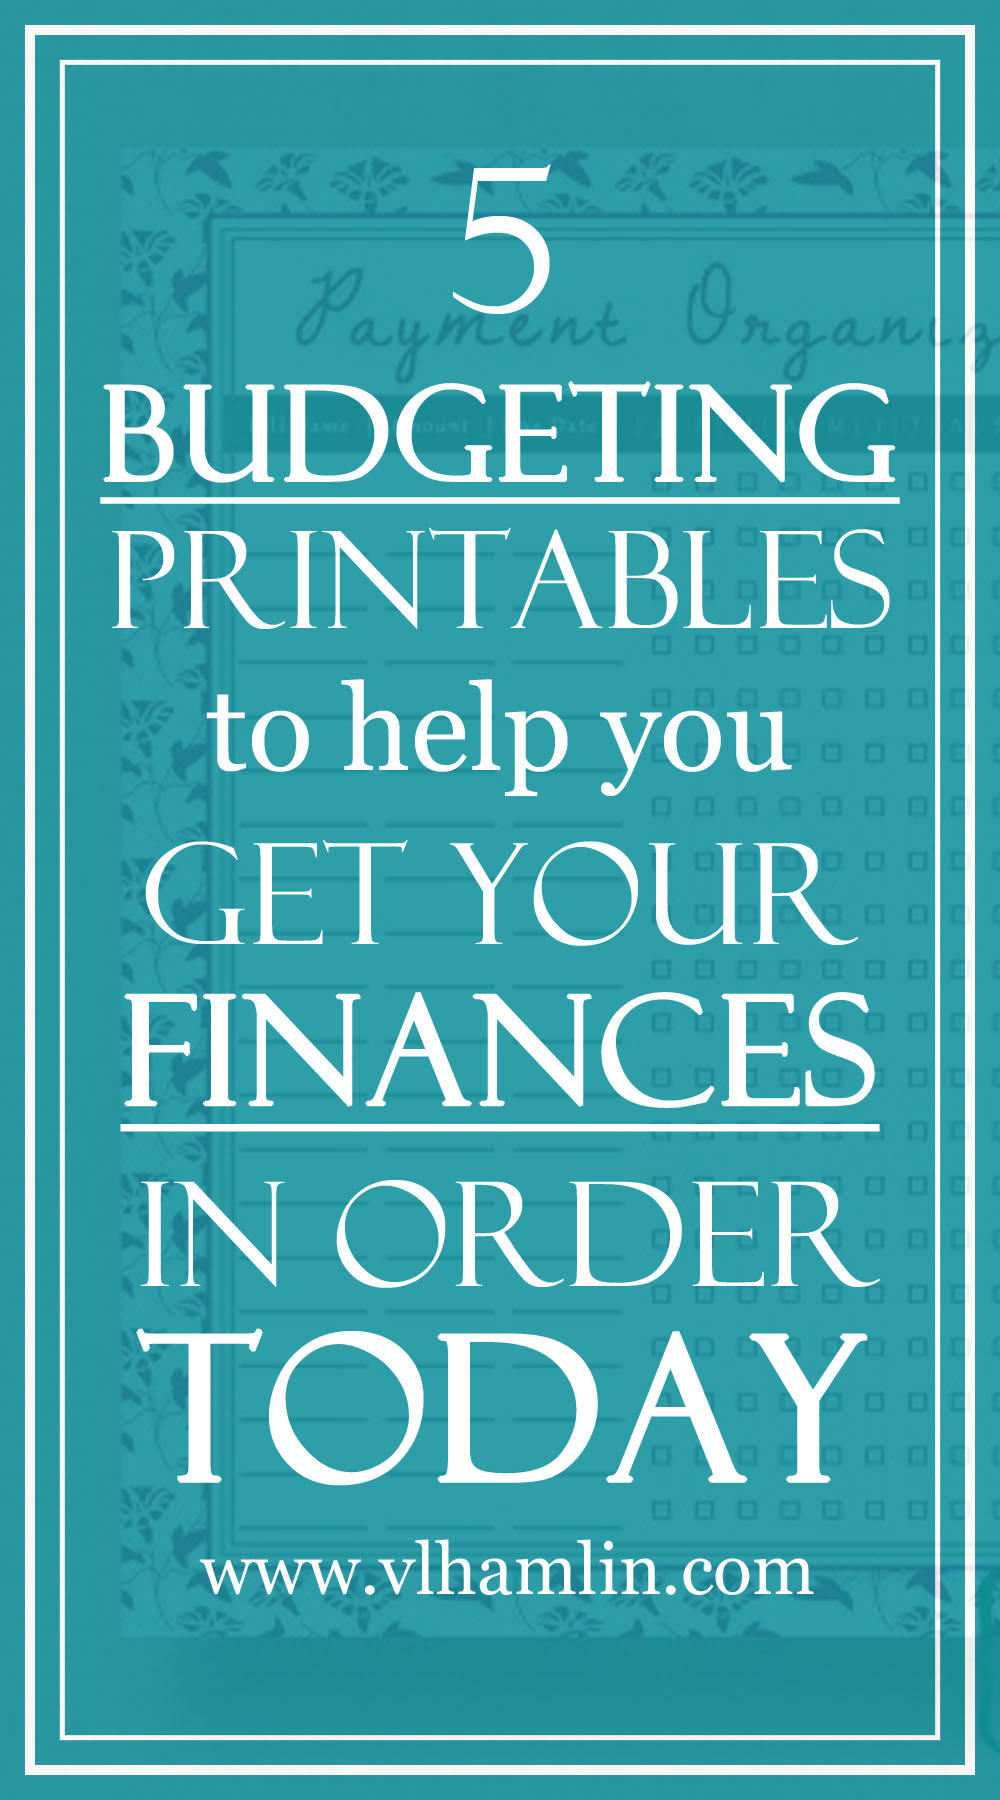 5 Budget Printables to Get Your Finances in Order Today